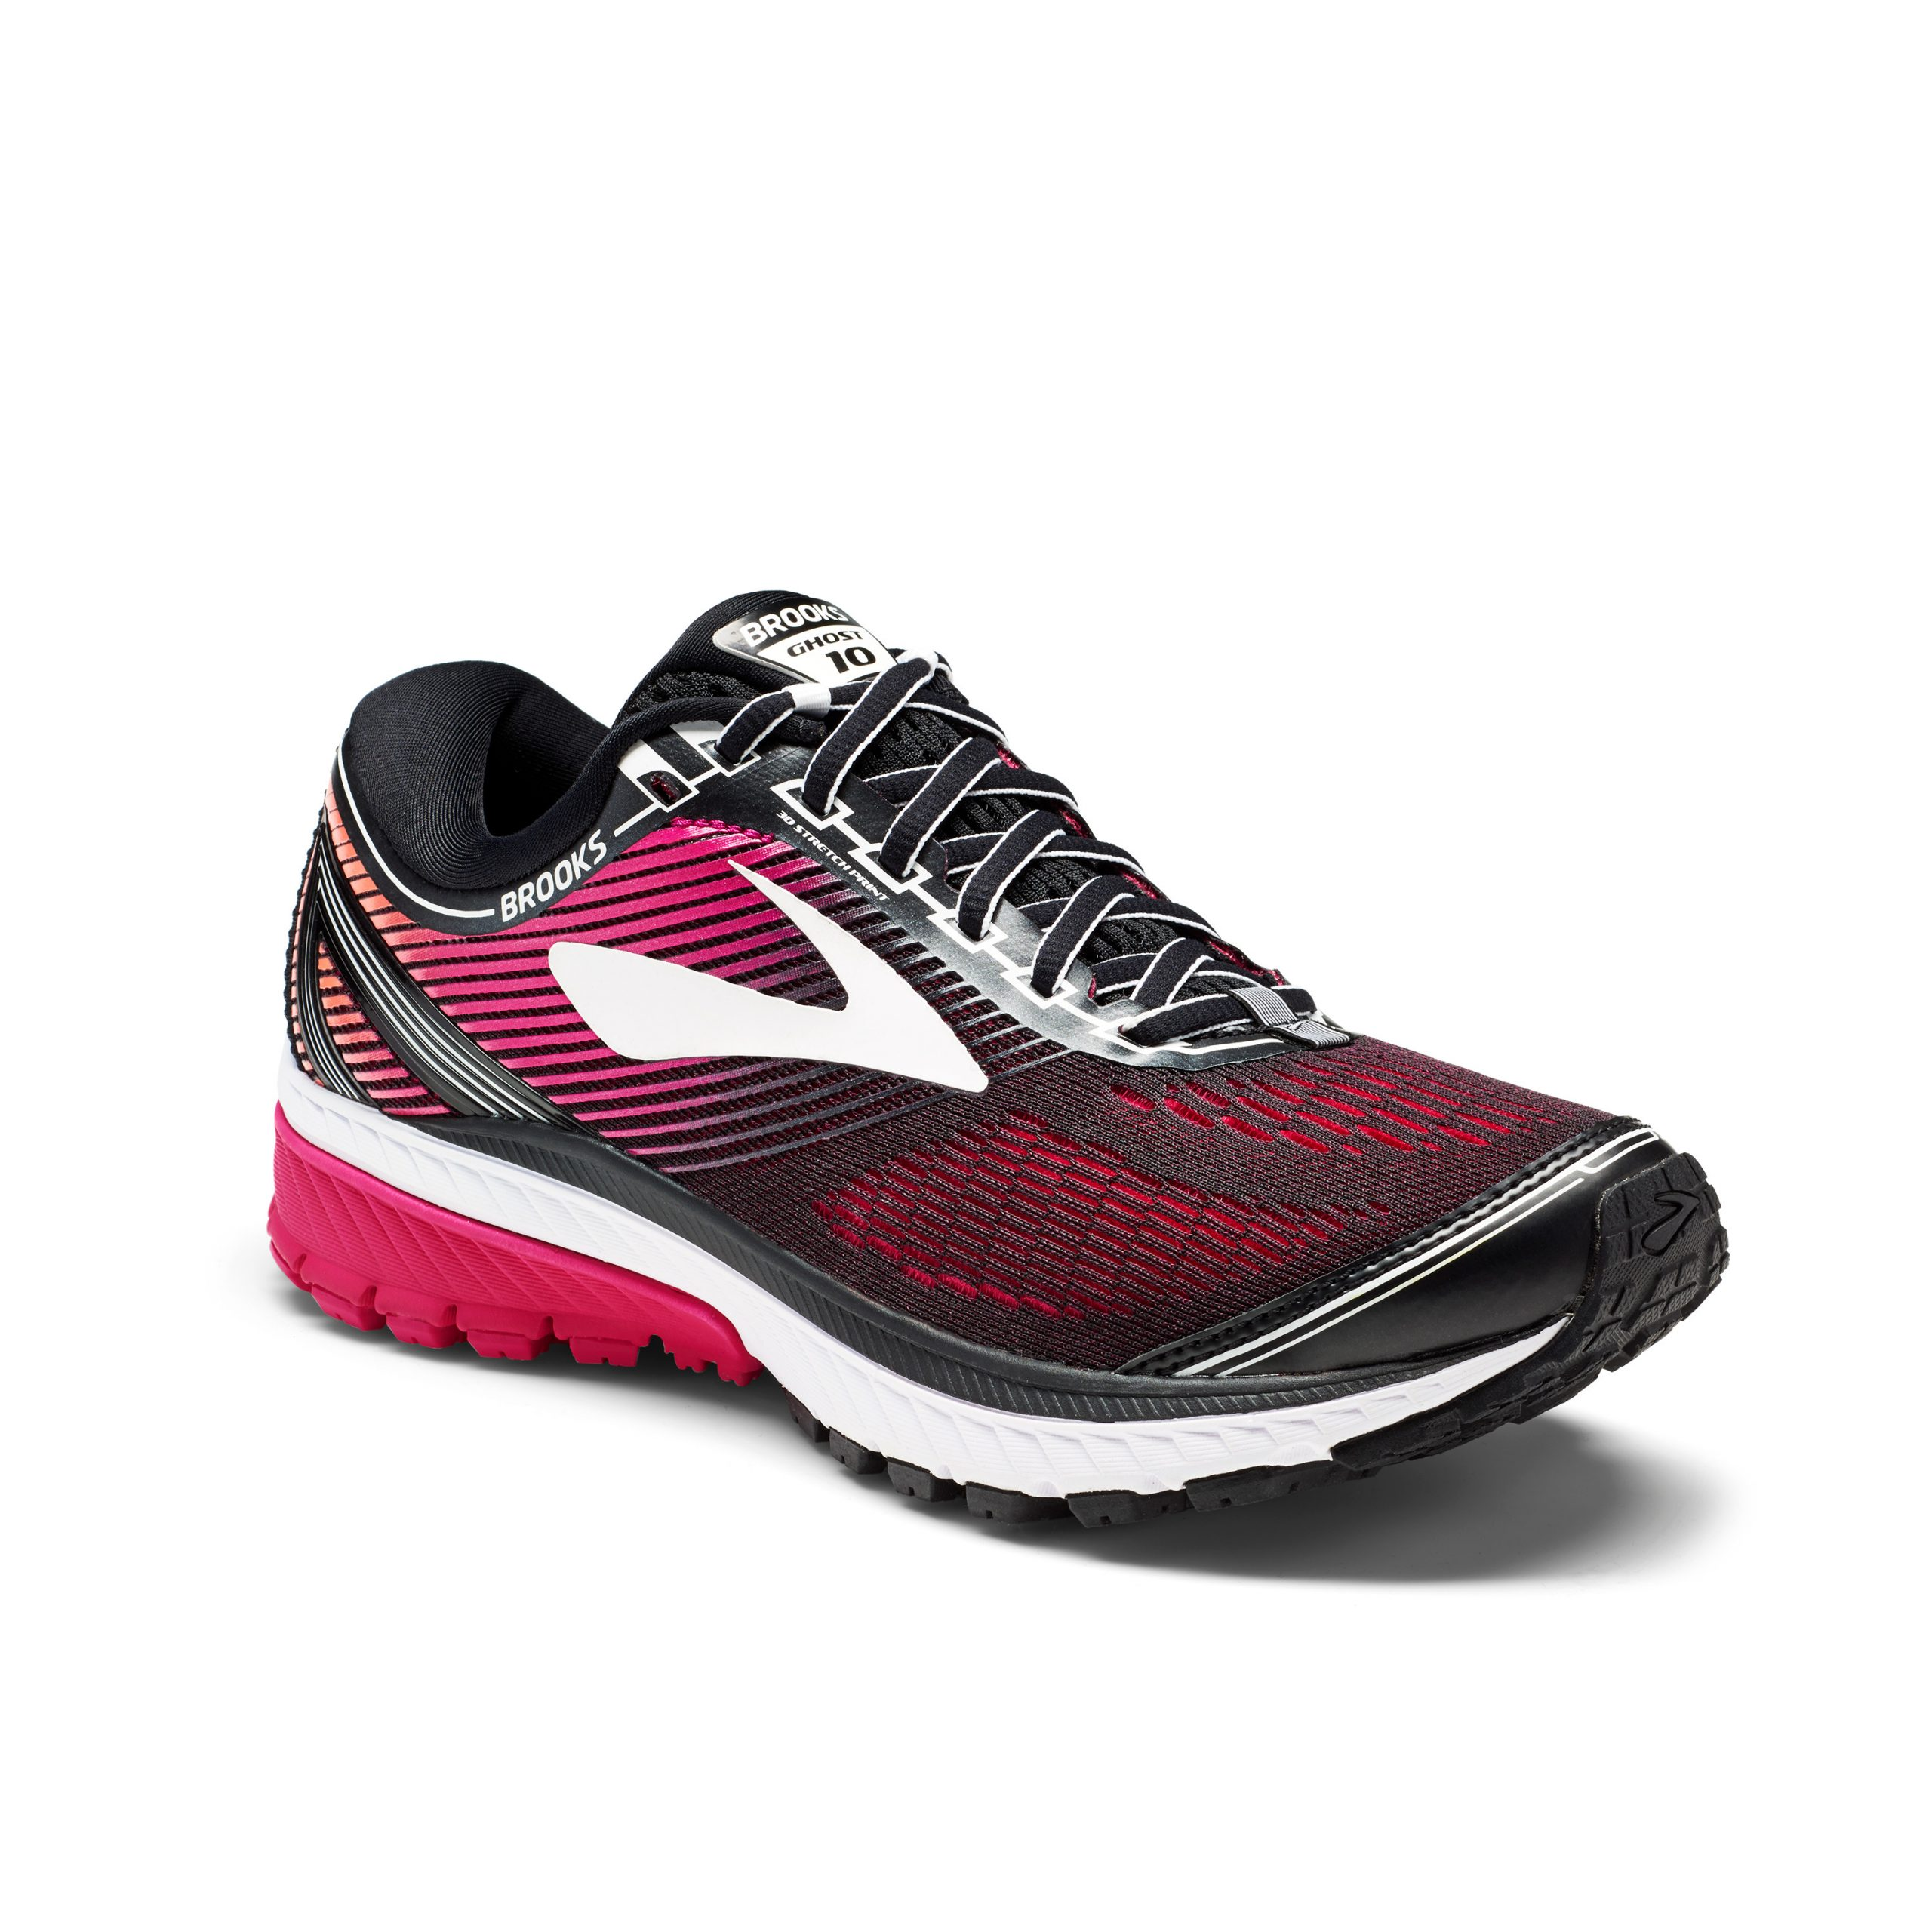 WOMEN'S GHOST 10 - Brooks Running Shoes SA